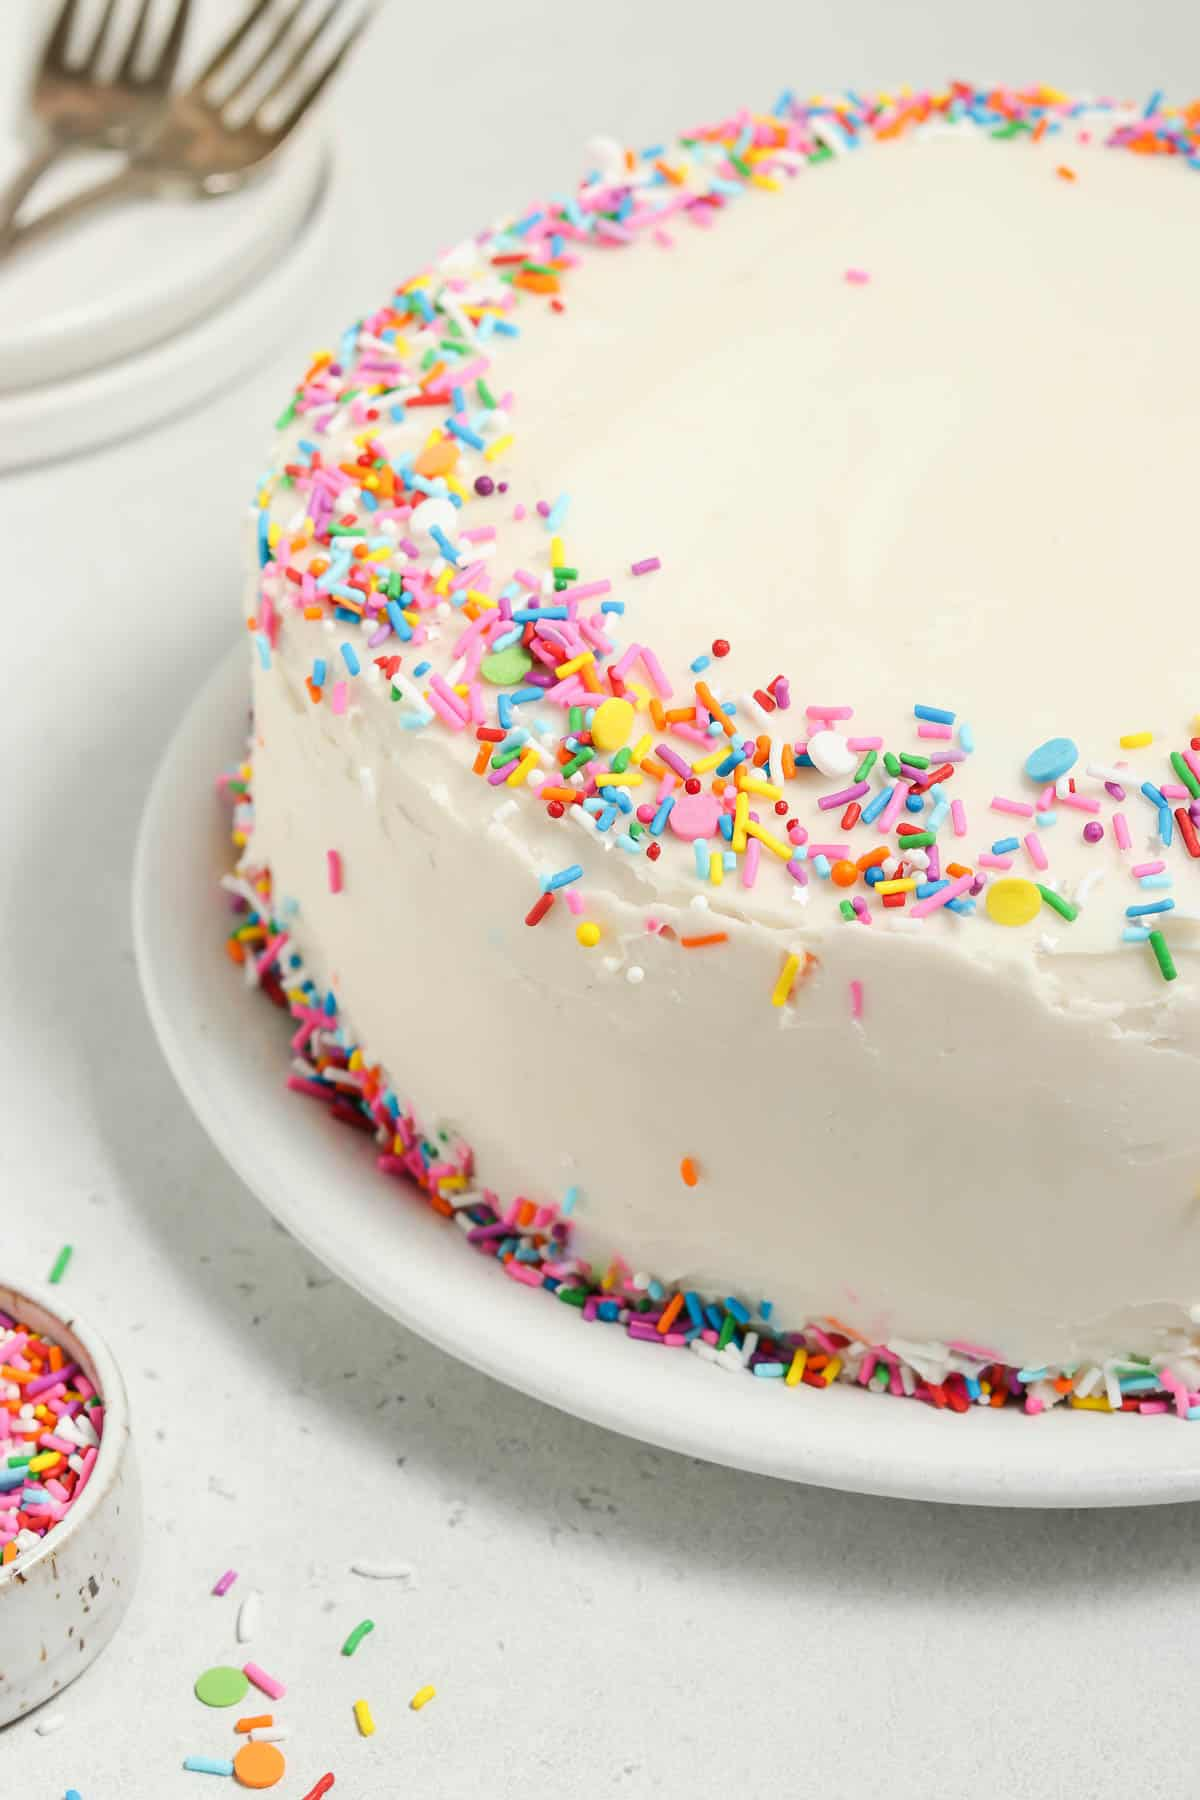 Front view of a whole vegan vanilla cake on a cake plate. Sprinkles, plates and forks on the side.